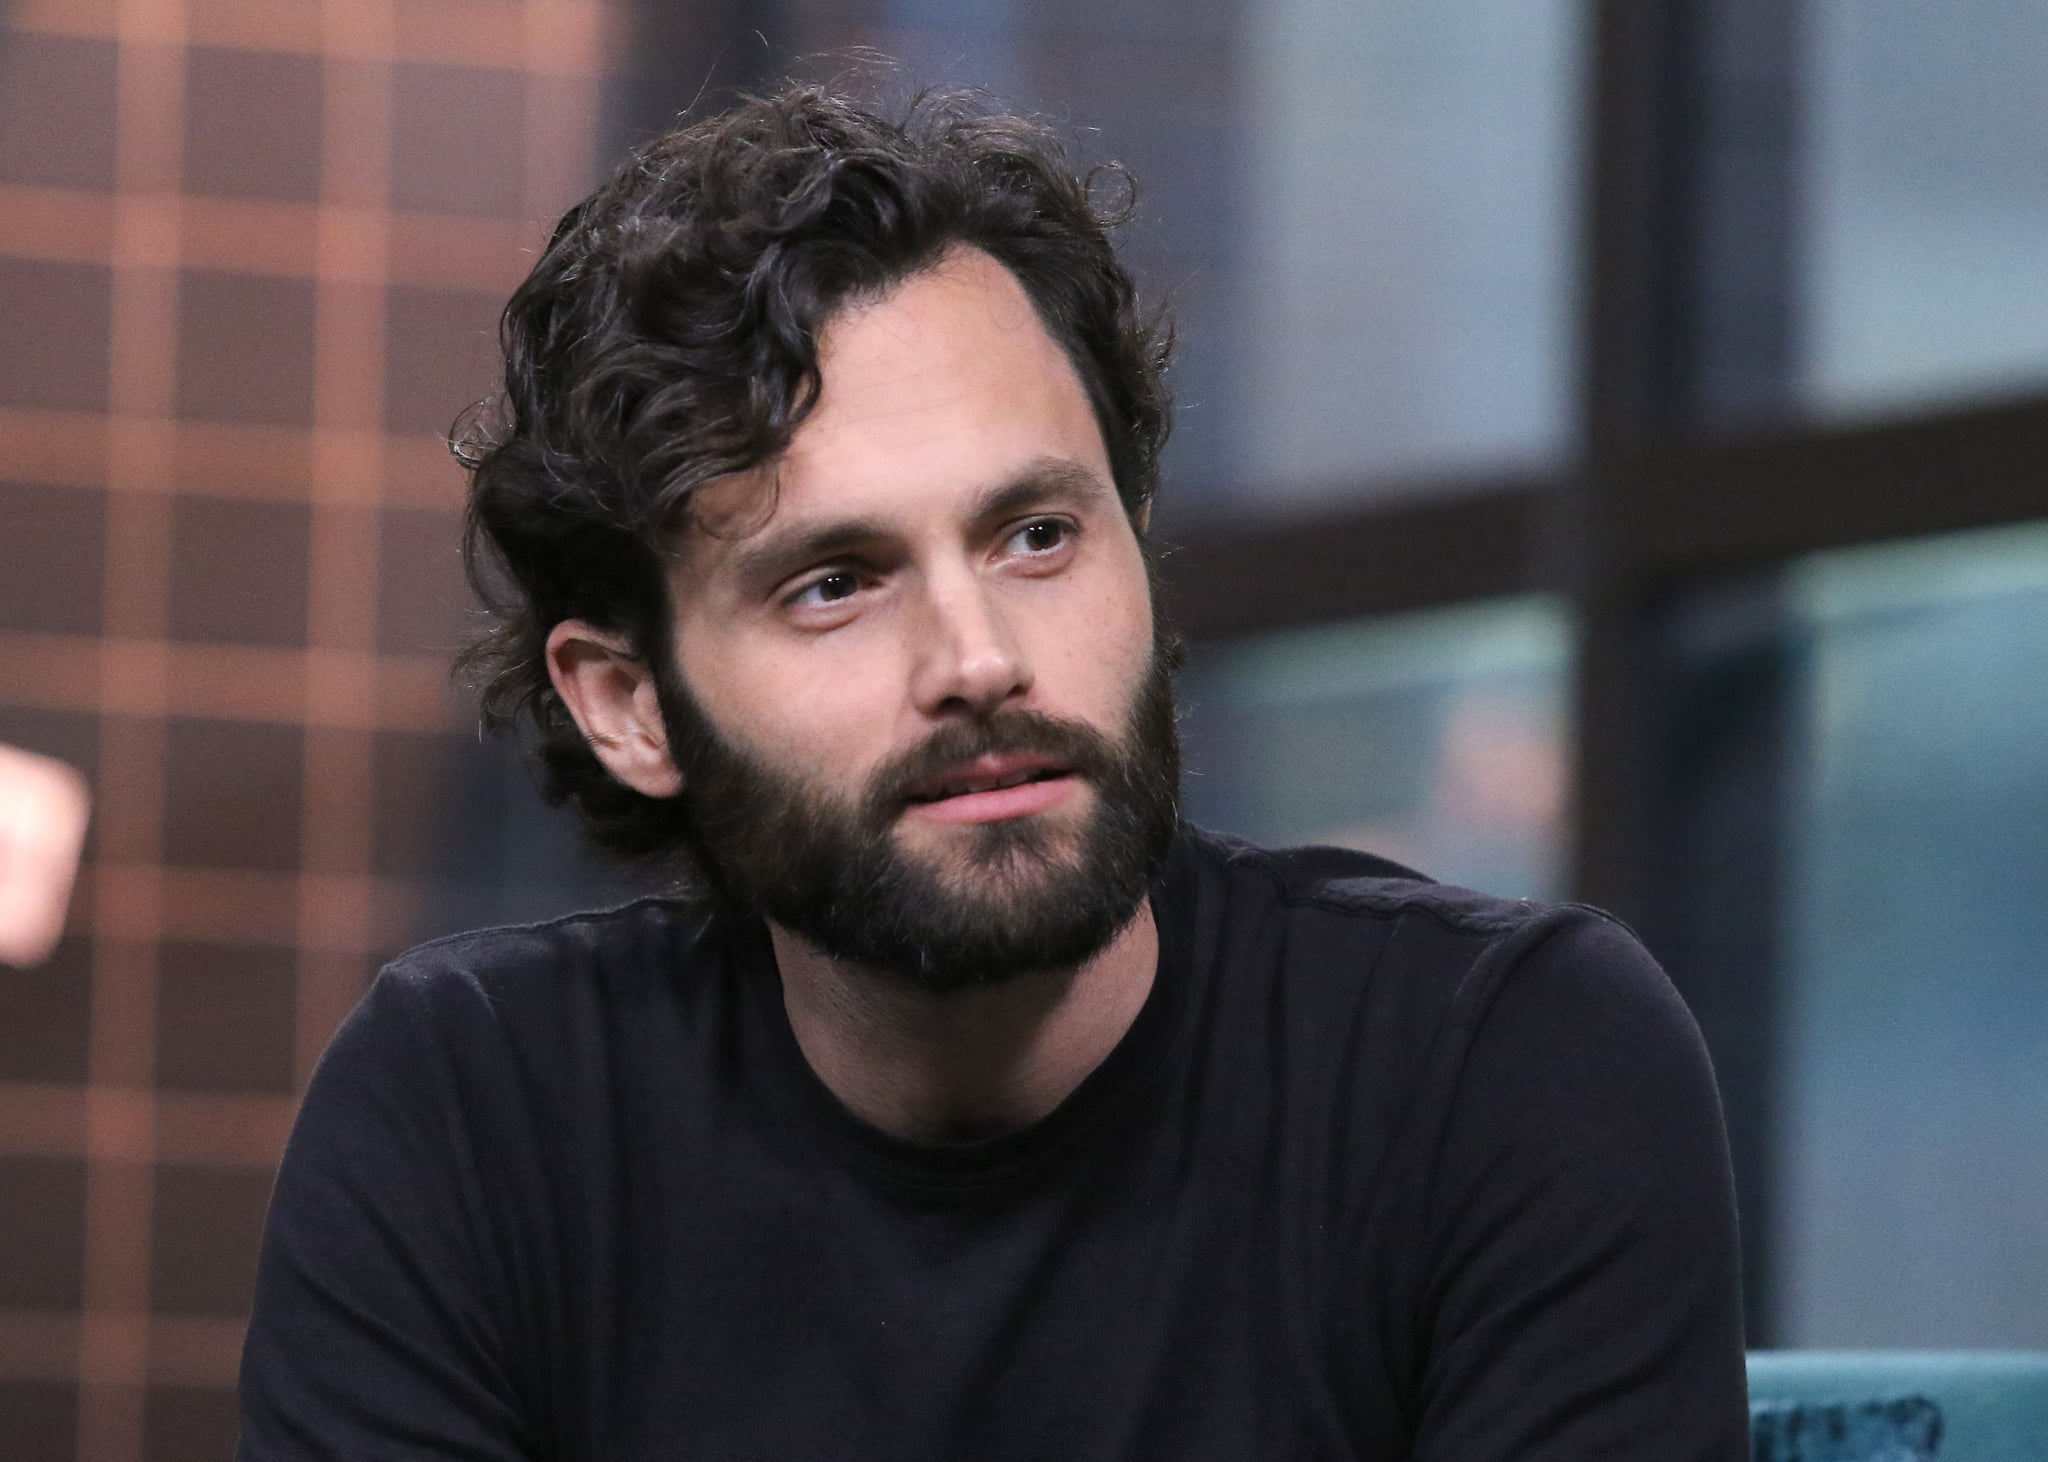 NEW YORK, NEW YORK - JANUARY 09: Actor Penn Badgley attends the Build Series to discuss his show